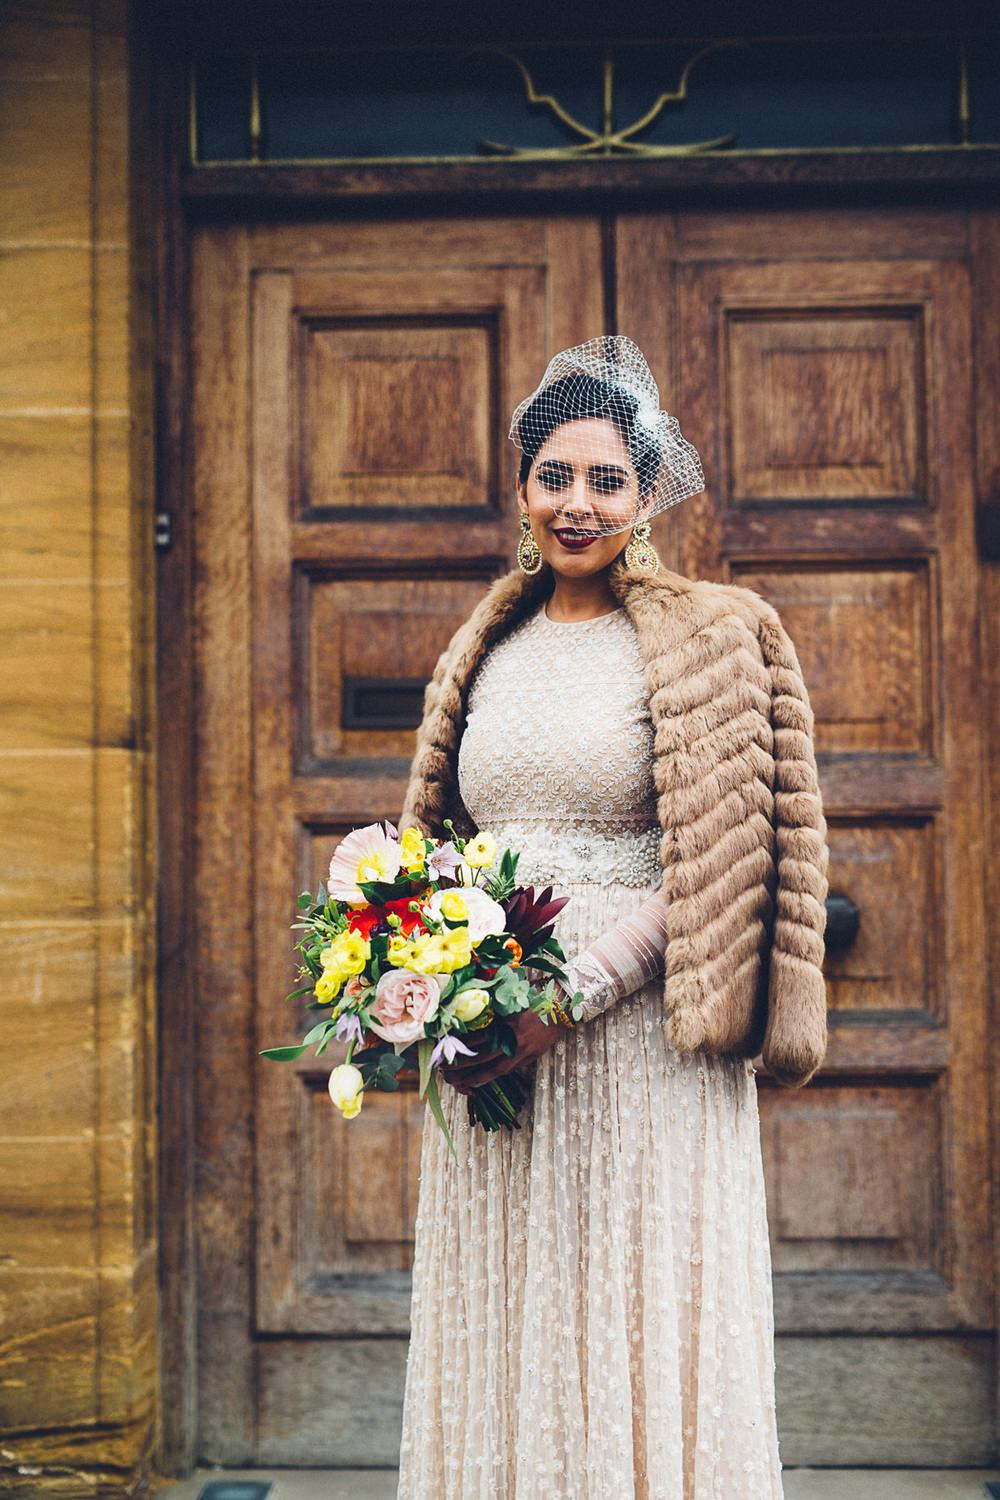 Bride Bridal Ivory Gold Indian Dress Embellished Long Sleeved Birdcage Veil Fur Coat Bouquet MC Motors Wedding LoveStruck Photography